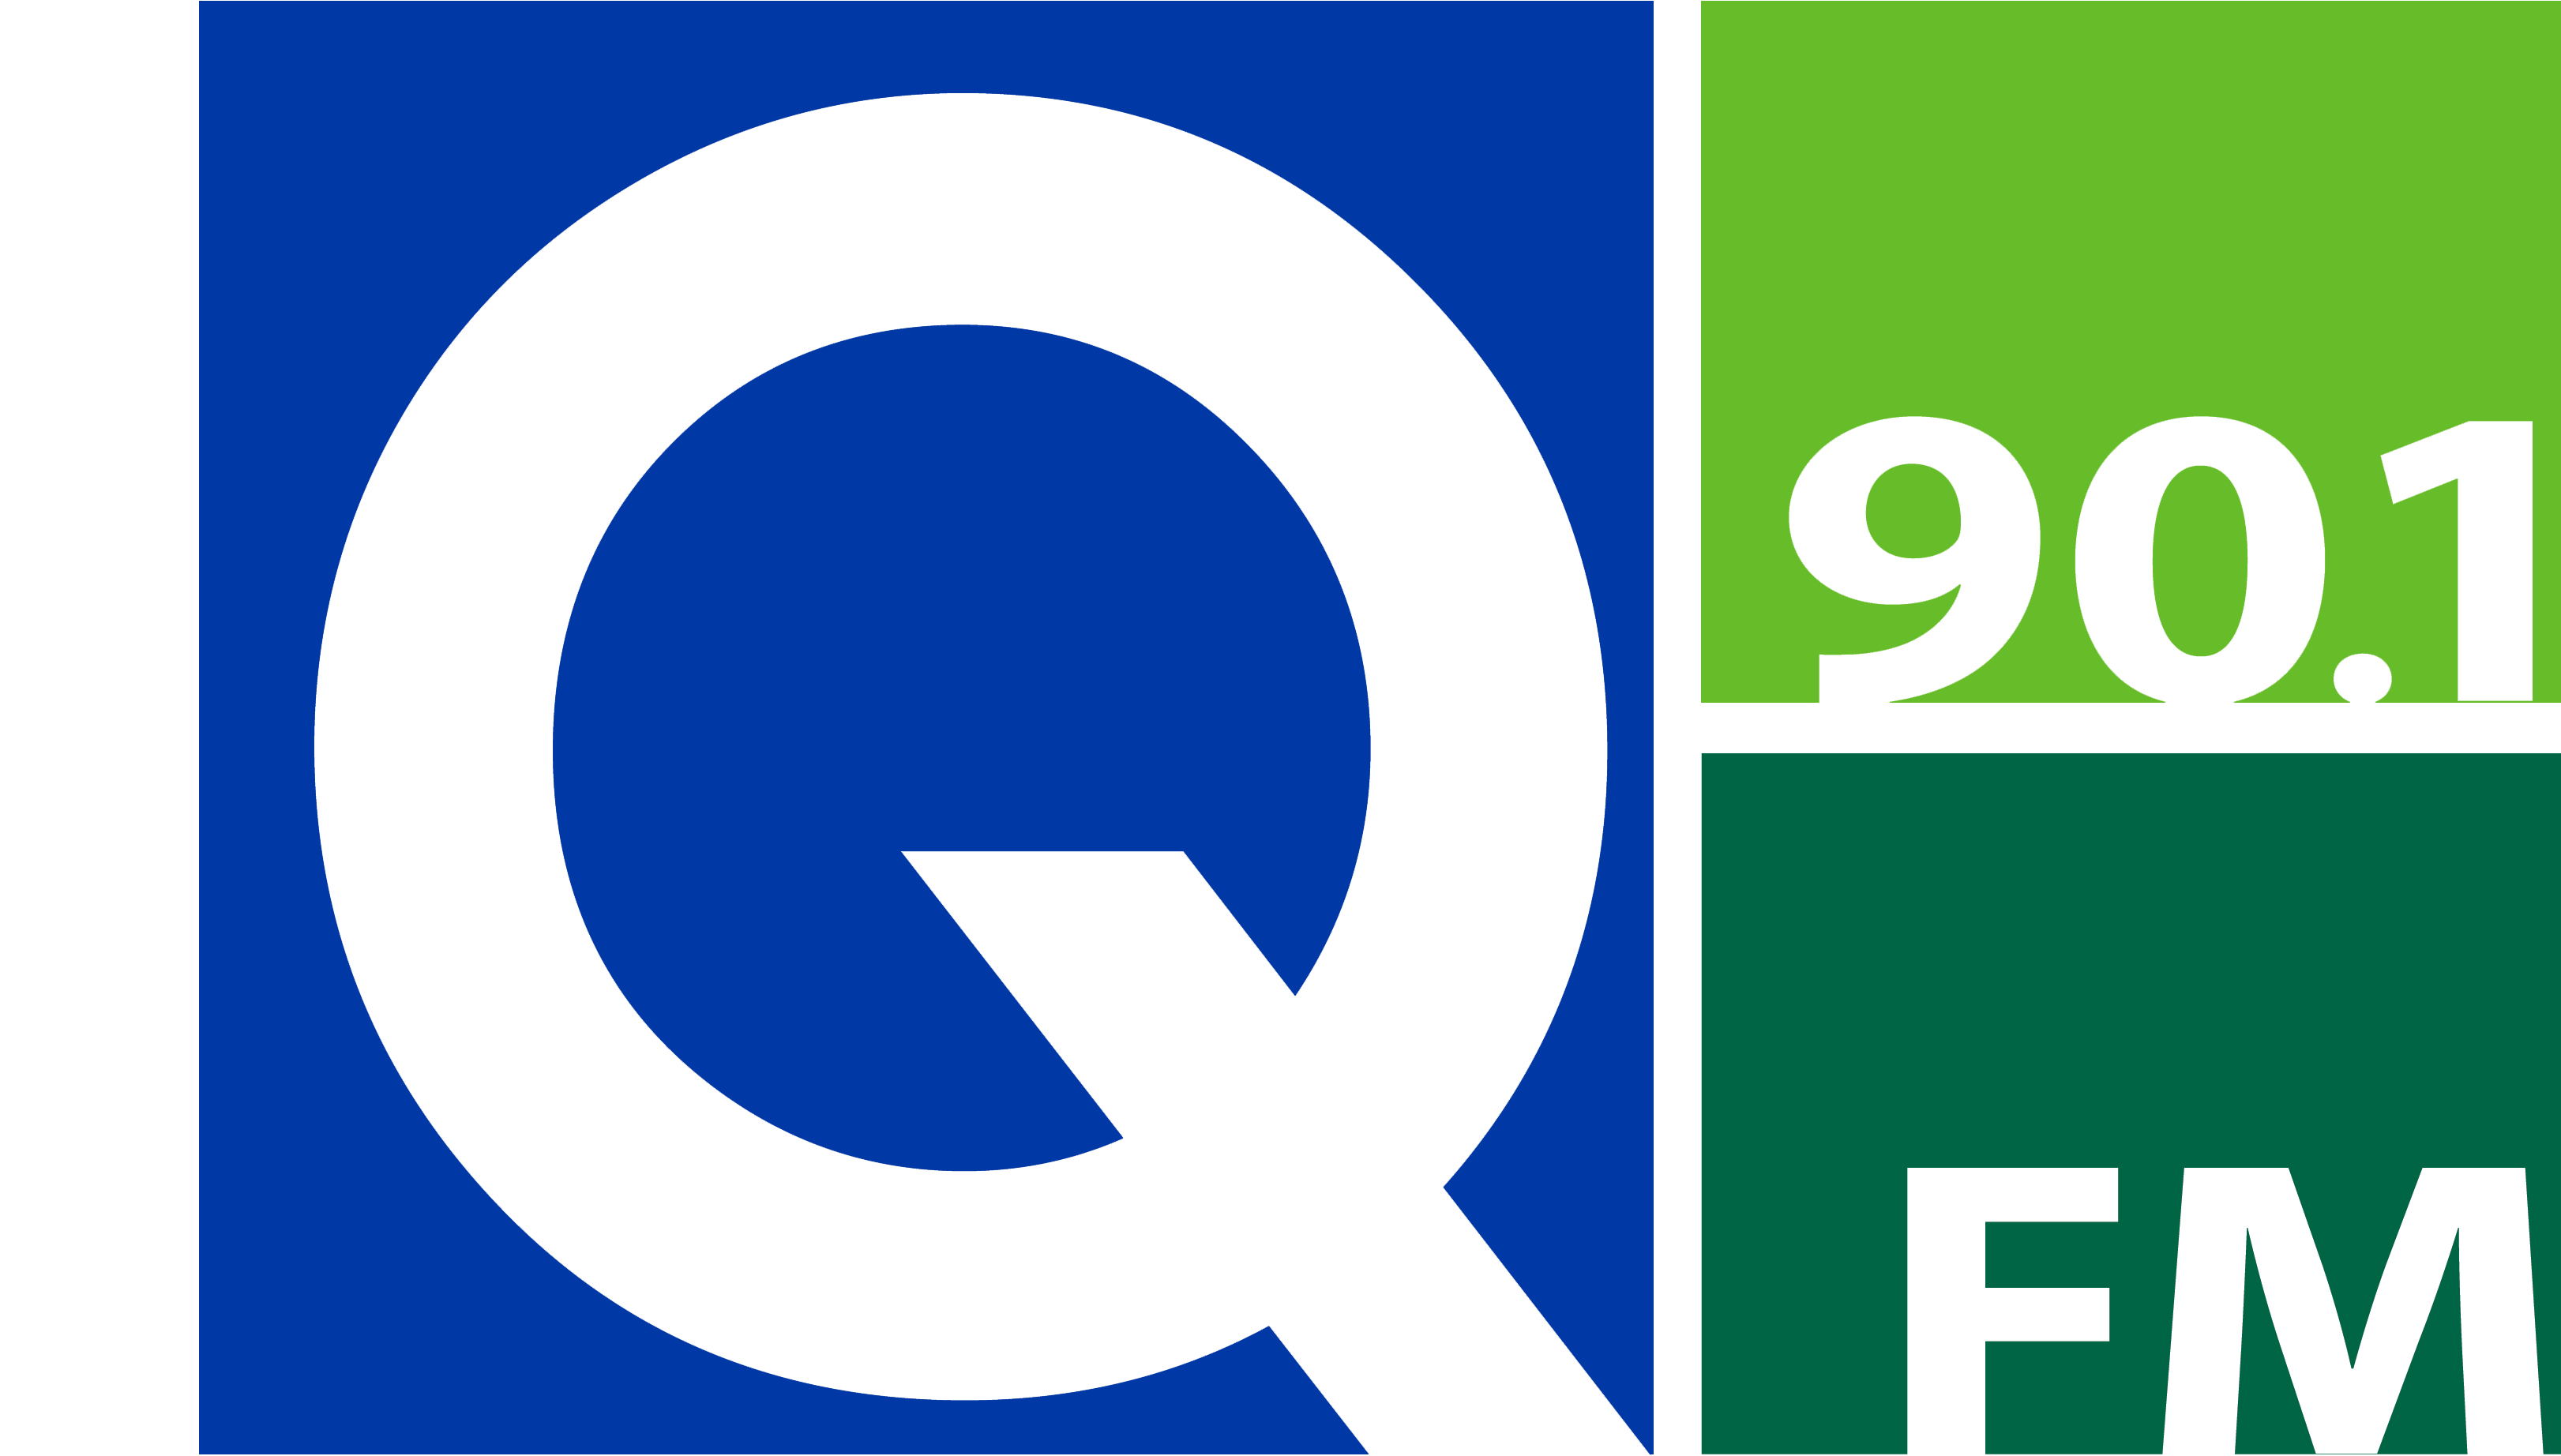 Q-90.1 FM Logo with Delta College Name in White